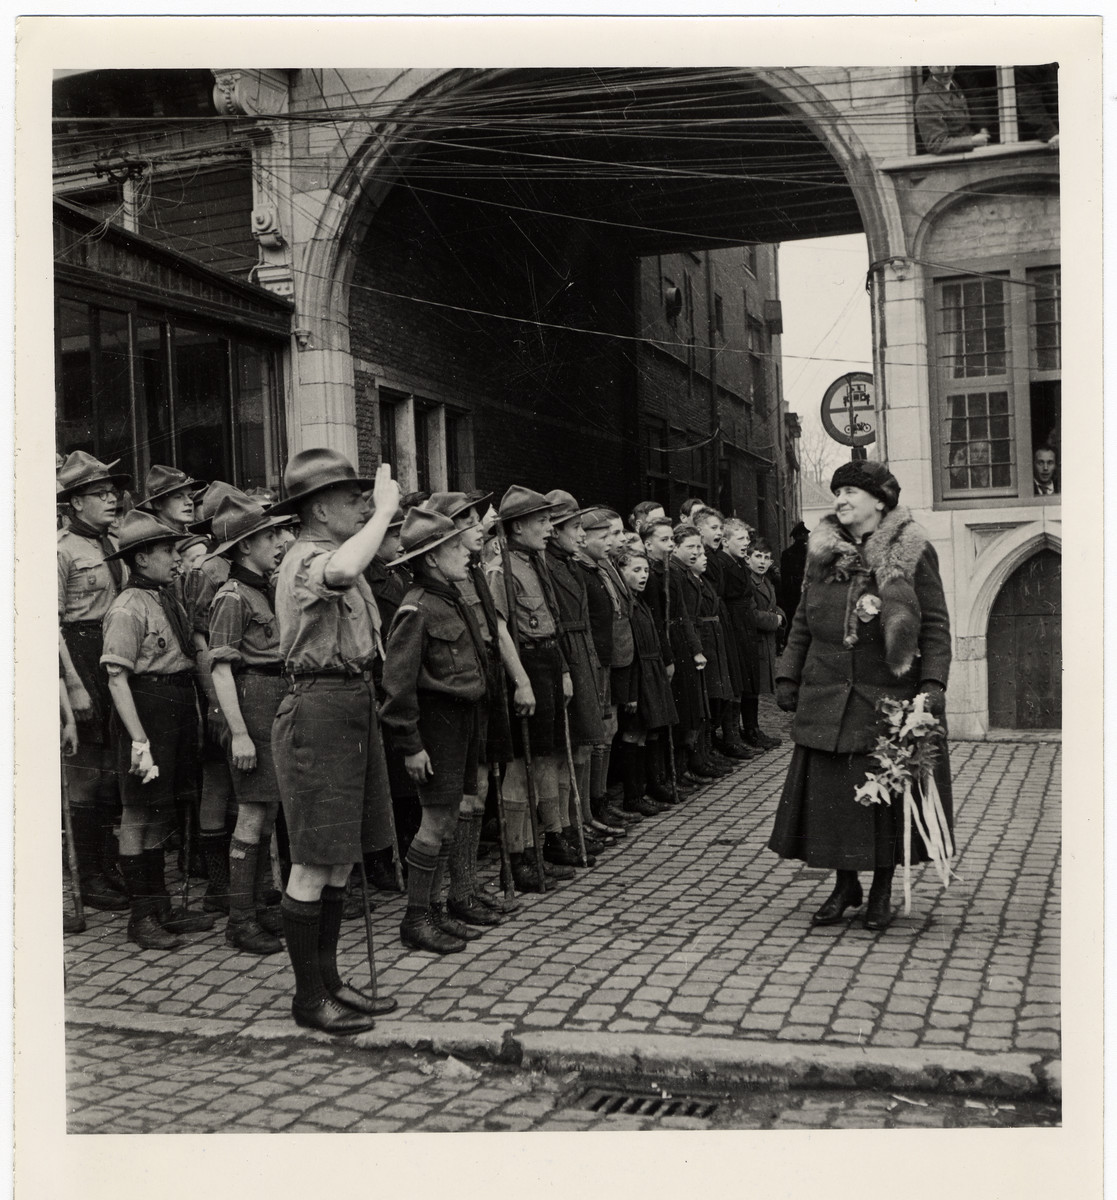 "Queen Wilhelmina acknowledges the salute of a troop of Boy Scouts at Bergen op Zoom.  Original Caption: ""In her first visit to her country after five years of exile, Queen Wilhelmina visited every town, every village and every hamlet that she could fit into a 10-day tour of liberated areas in Holland. The 65-year-old Queen did not spare herself. She saw the vast stretches of inundated countryside, which will remain barren for years to come even after the bombed dikes of The Netherlands are repaired. She saw the debris of towns where fighting took place only a few days before her visit, gave sympathy and solace to men, women and children who were wounded or bereaved. She met the valiant miners of Hoerlan and Venlo. Wherever she stopped, she talked with the men and women who fought stubbornly and silently in the Dutch Resistance Movement. It was announced March 23, 1945, that the unofficial, unplanned tour had ended with Queen Wilhelmina's return to England. The queen was born in the Hague in 1880 and has reigned on the Dutch throne since 1890. When the Germans invaded Holland in May, 1940, Queen Wilhelmina was forced to flee to England."""